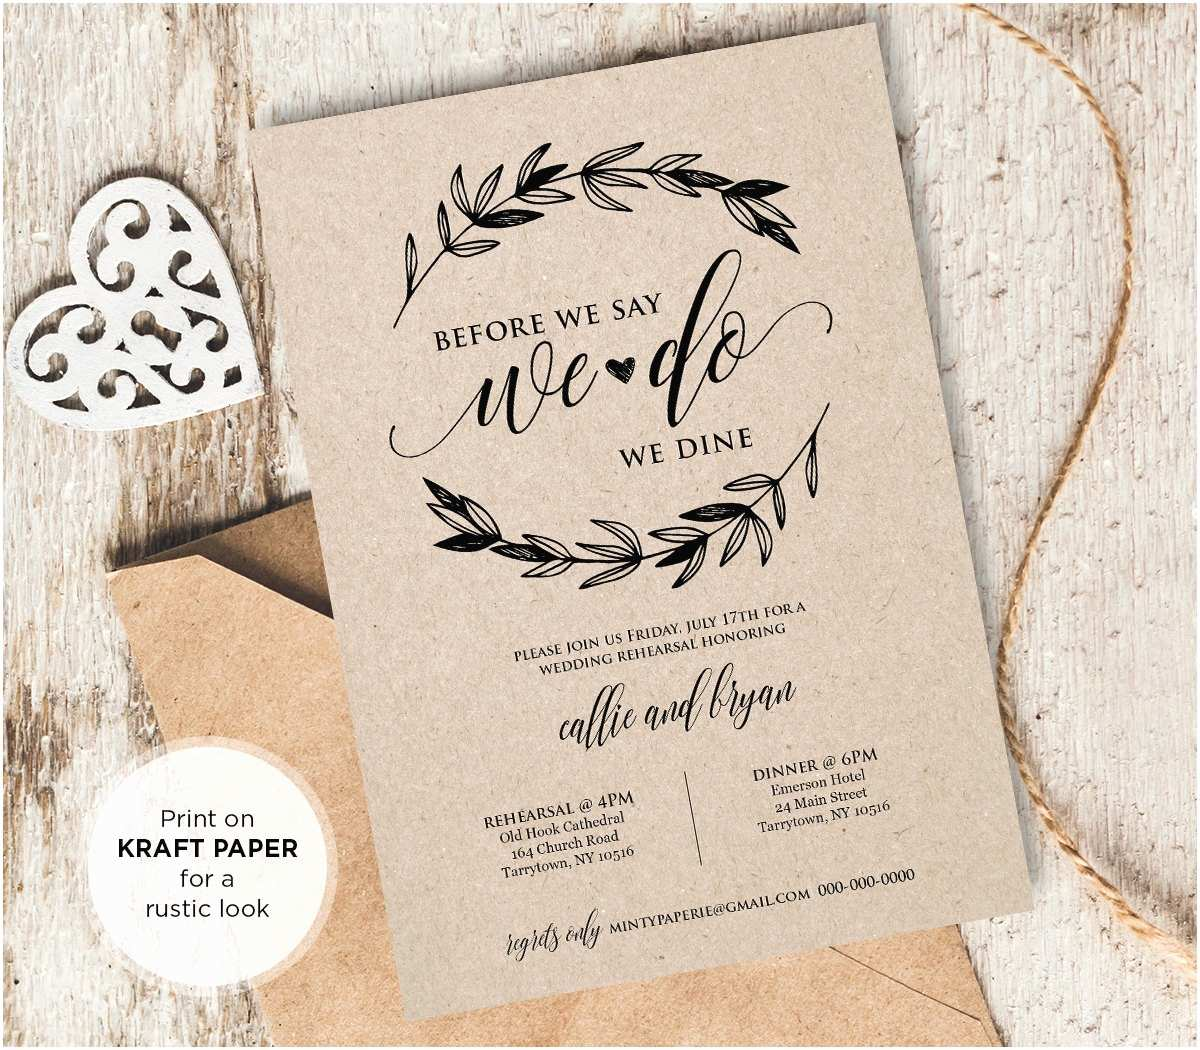 Wedding Rehearsal Invitations Rustic Wedding Rehearsal Invitation Instant Download